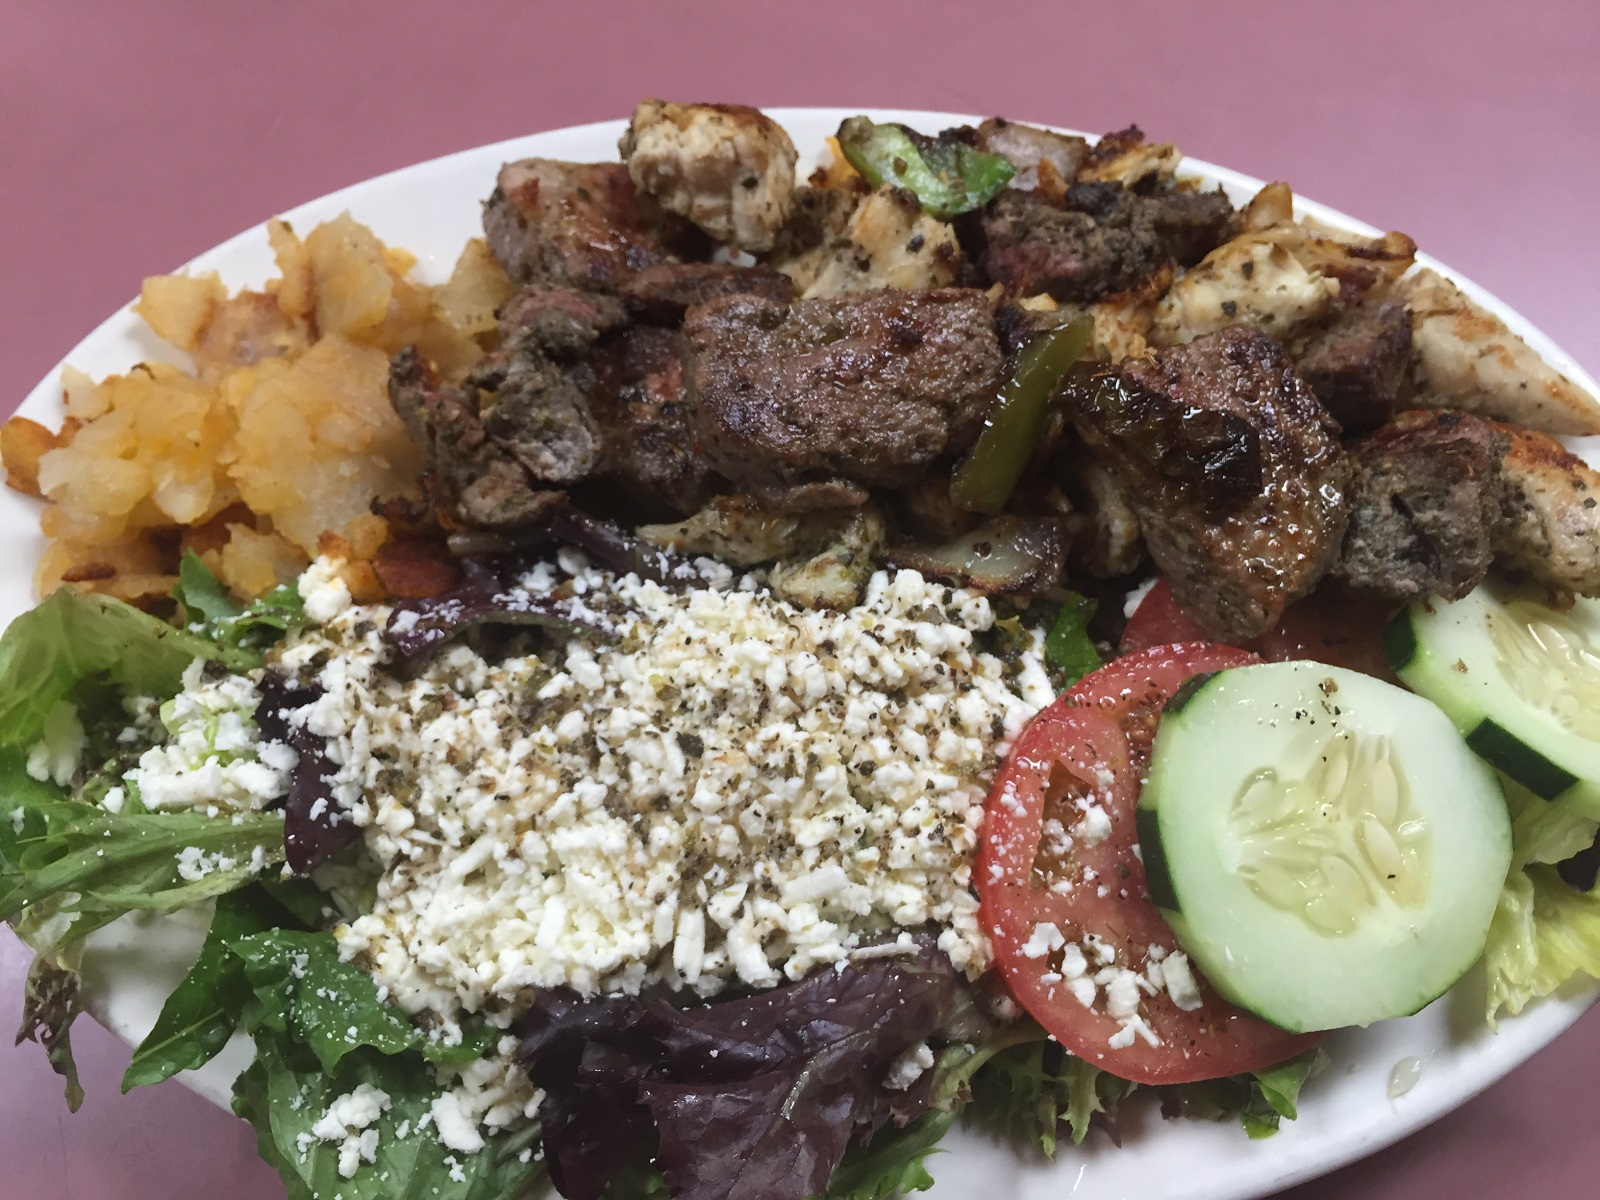 The mixed souvlaki, with both beef and chicken, is a signature item at 3 Star Family Restaurant in North Collins. (Elizabeth Carey/Special to The News.)